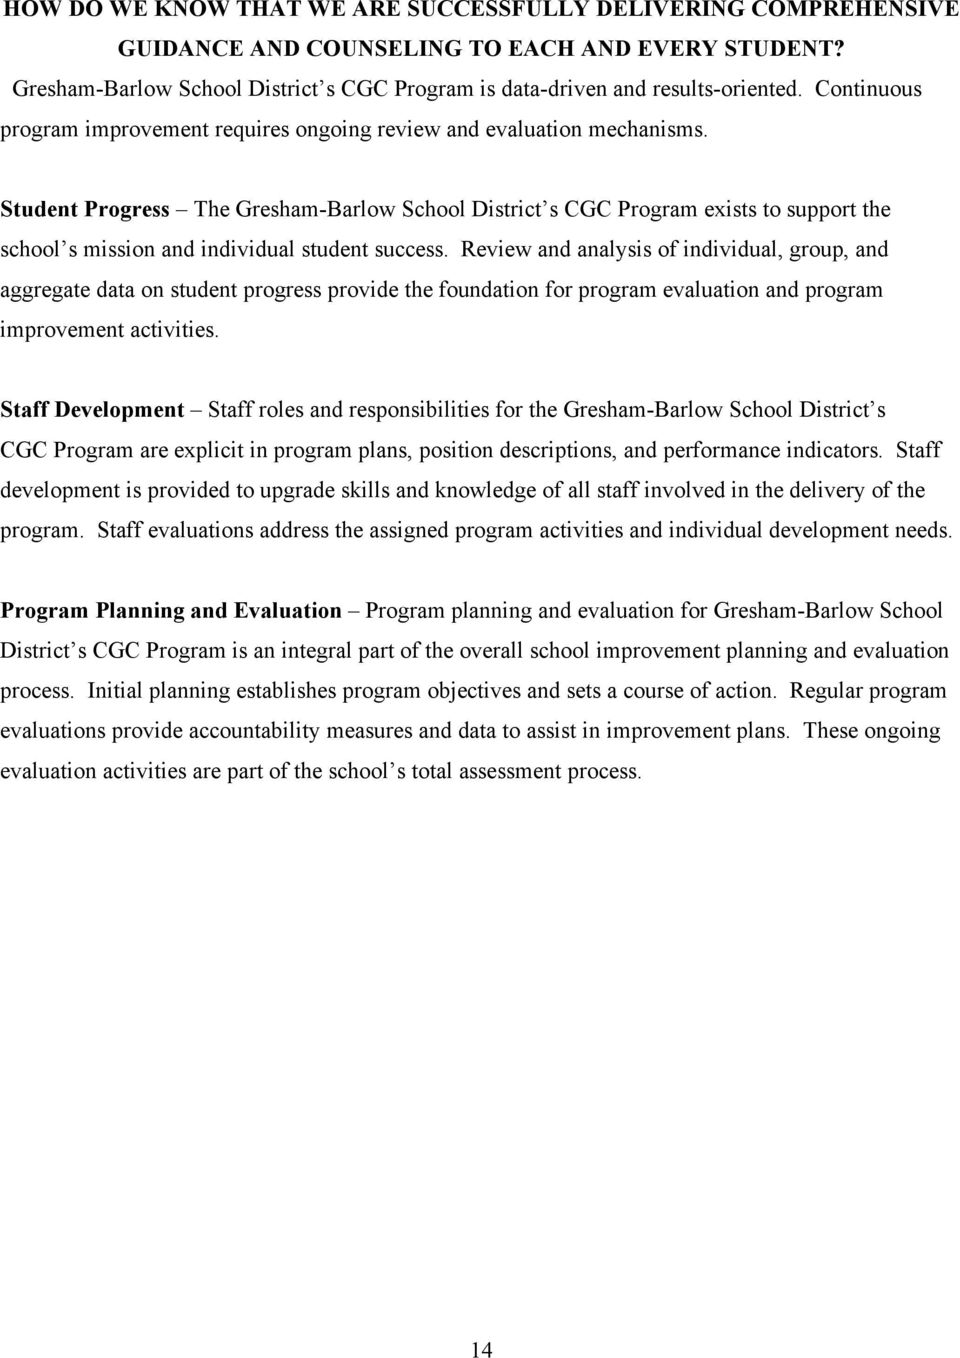 Student Progress The Gresham-Barlow School District s CGC Program exists to support the school s mission and individual student success.